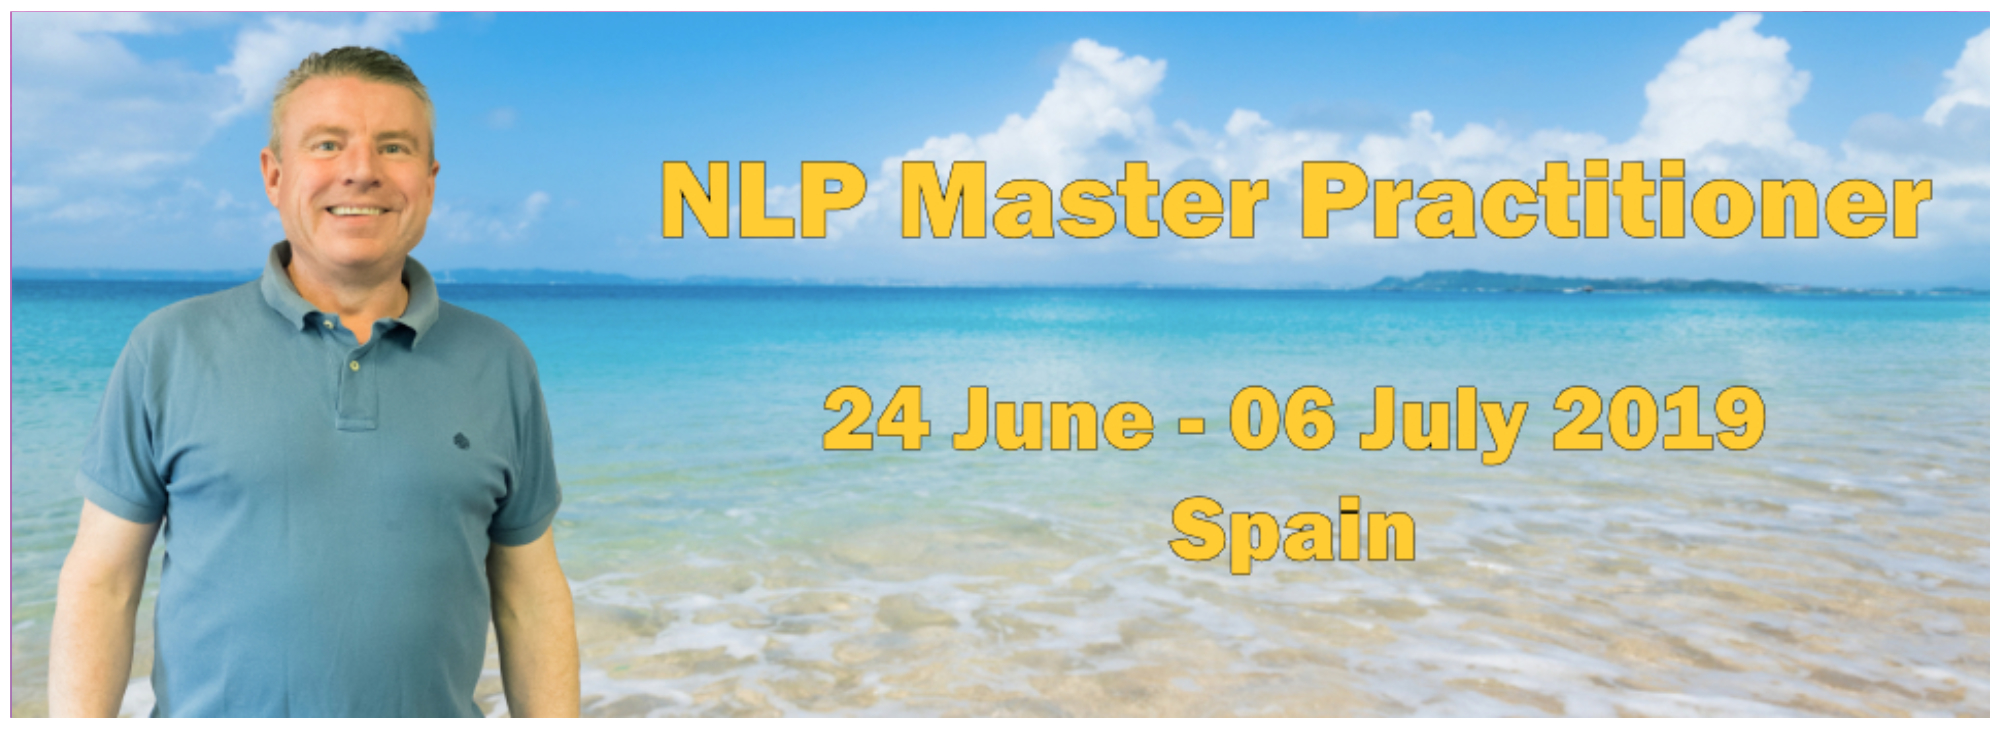 NLP Master Practitioner Certification (Spain)